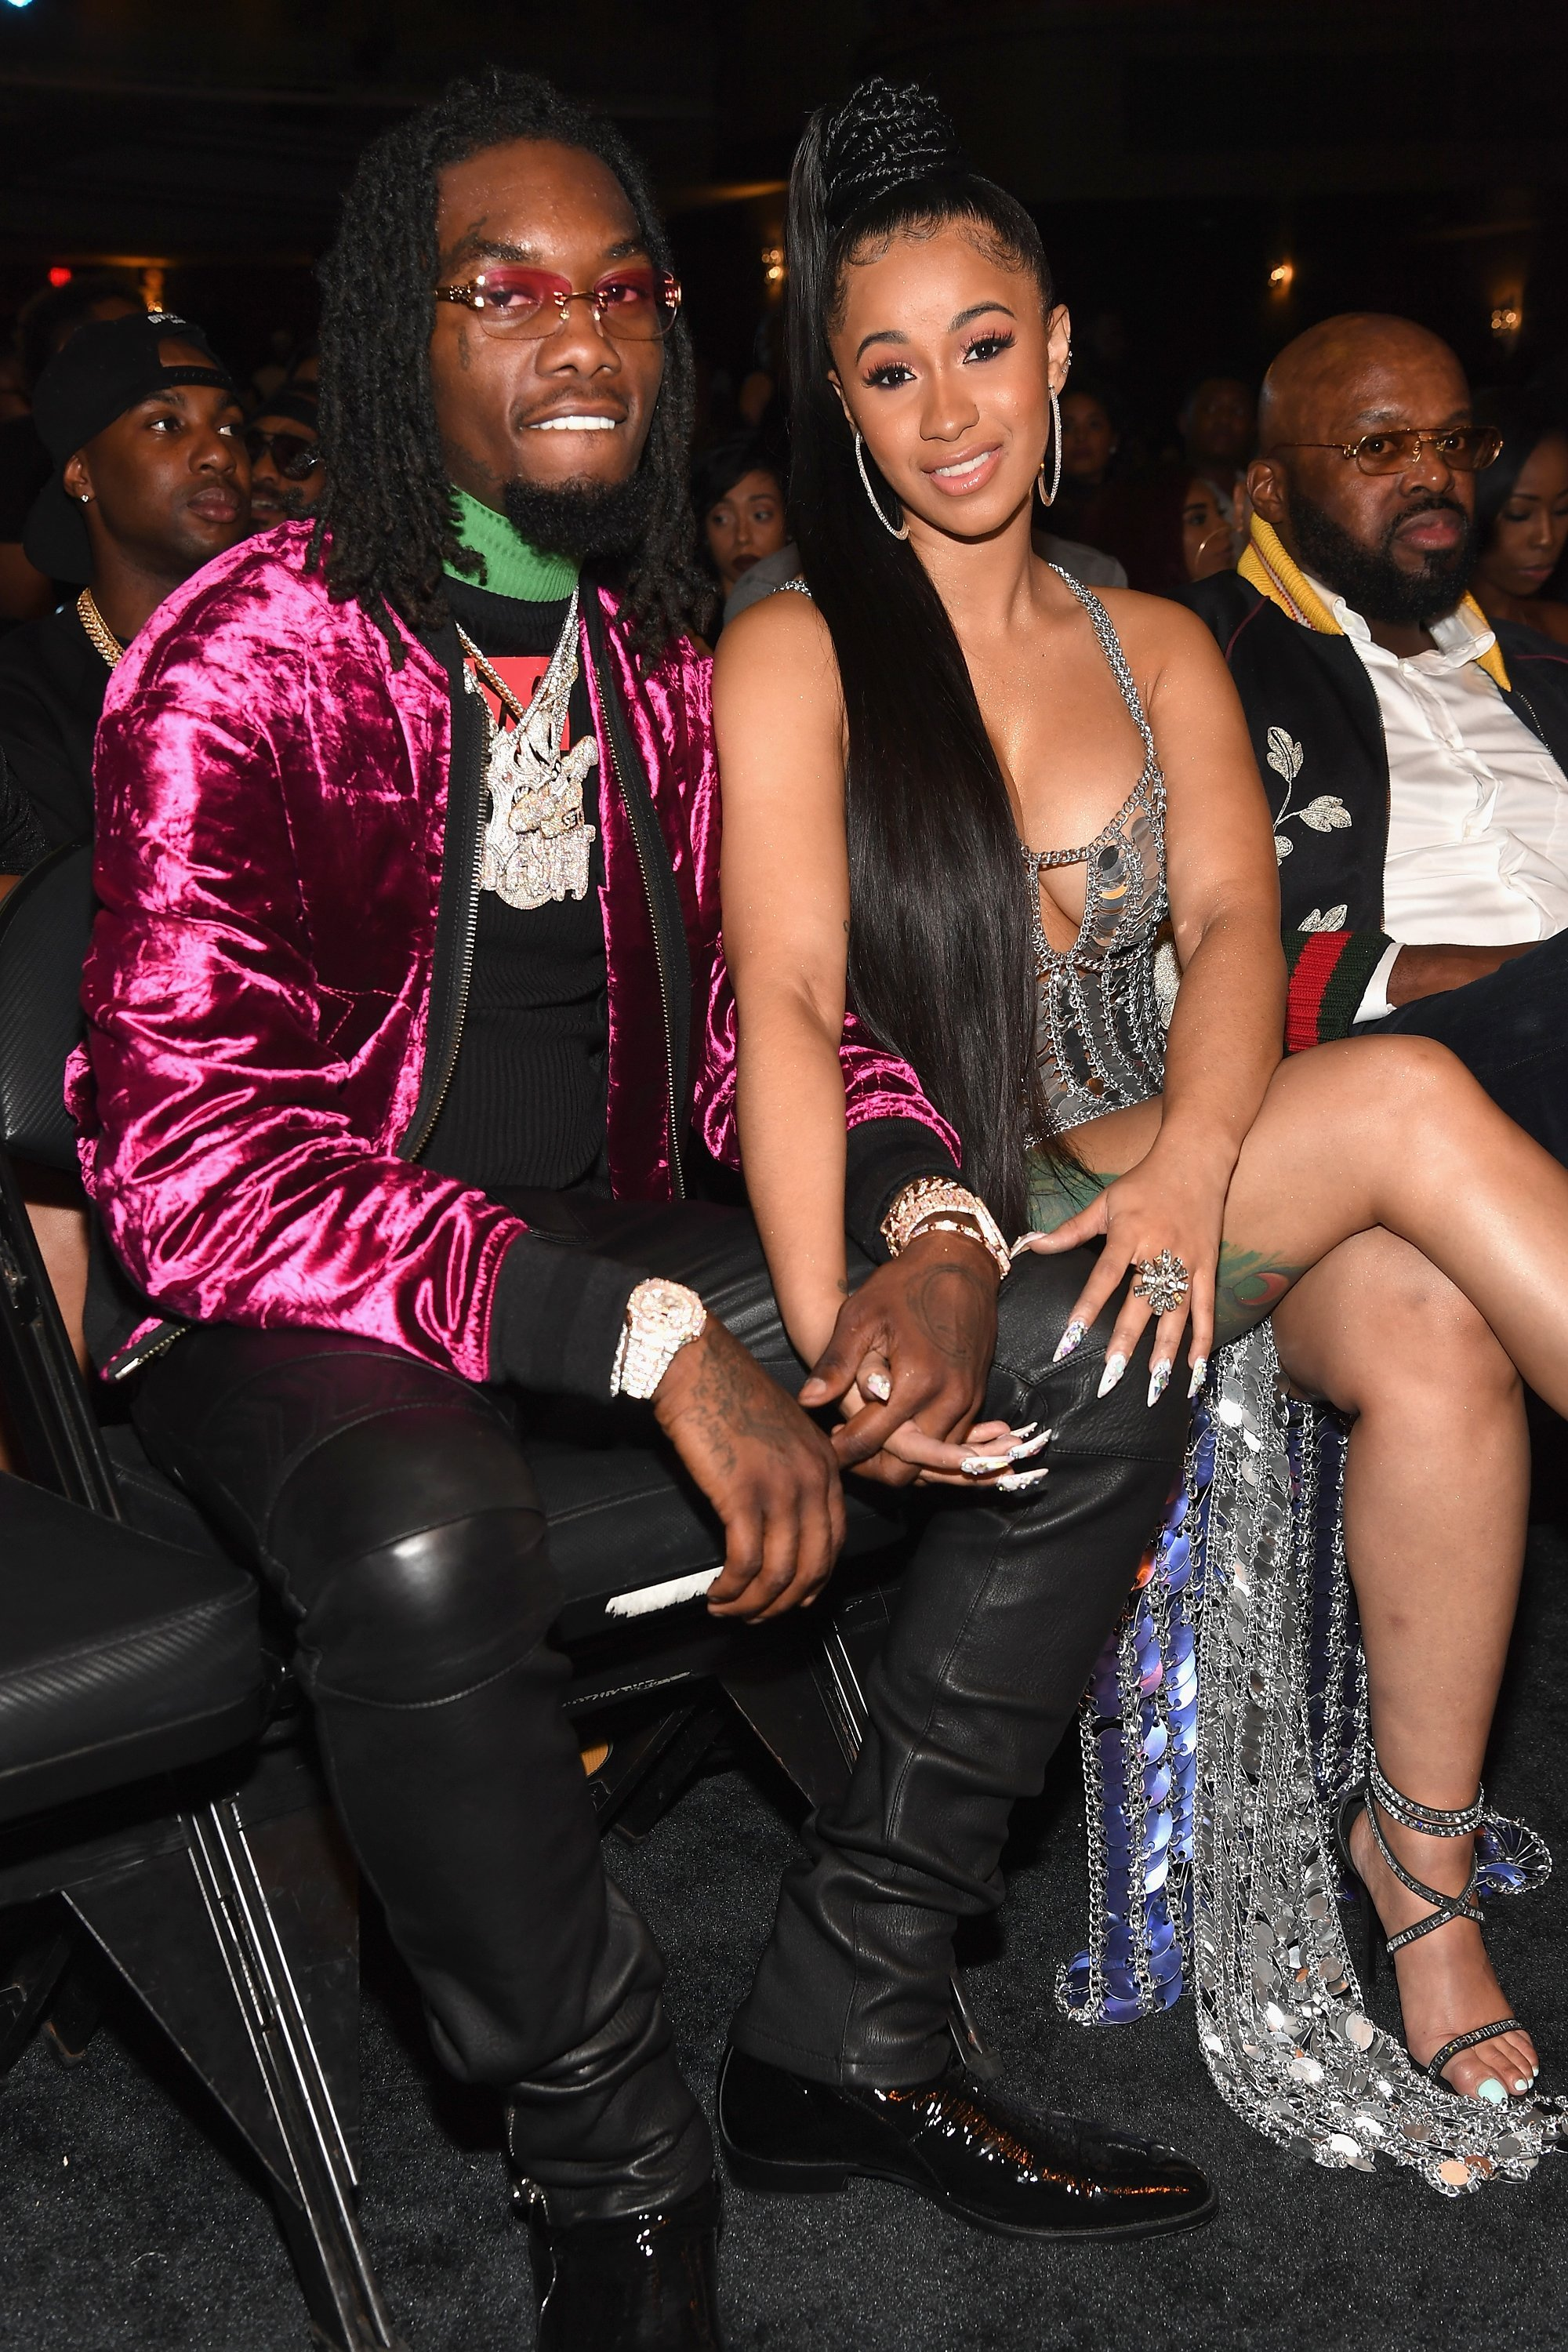 Offset & Cardi B at the BET Hip Hop Awards on Oct. 6, 2017 in Florida | Photo: Getty Images